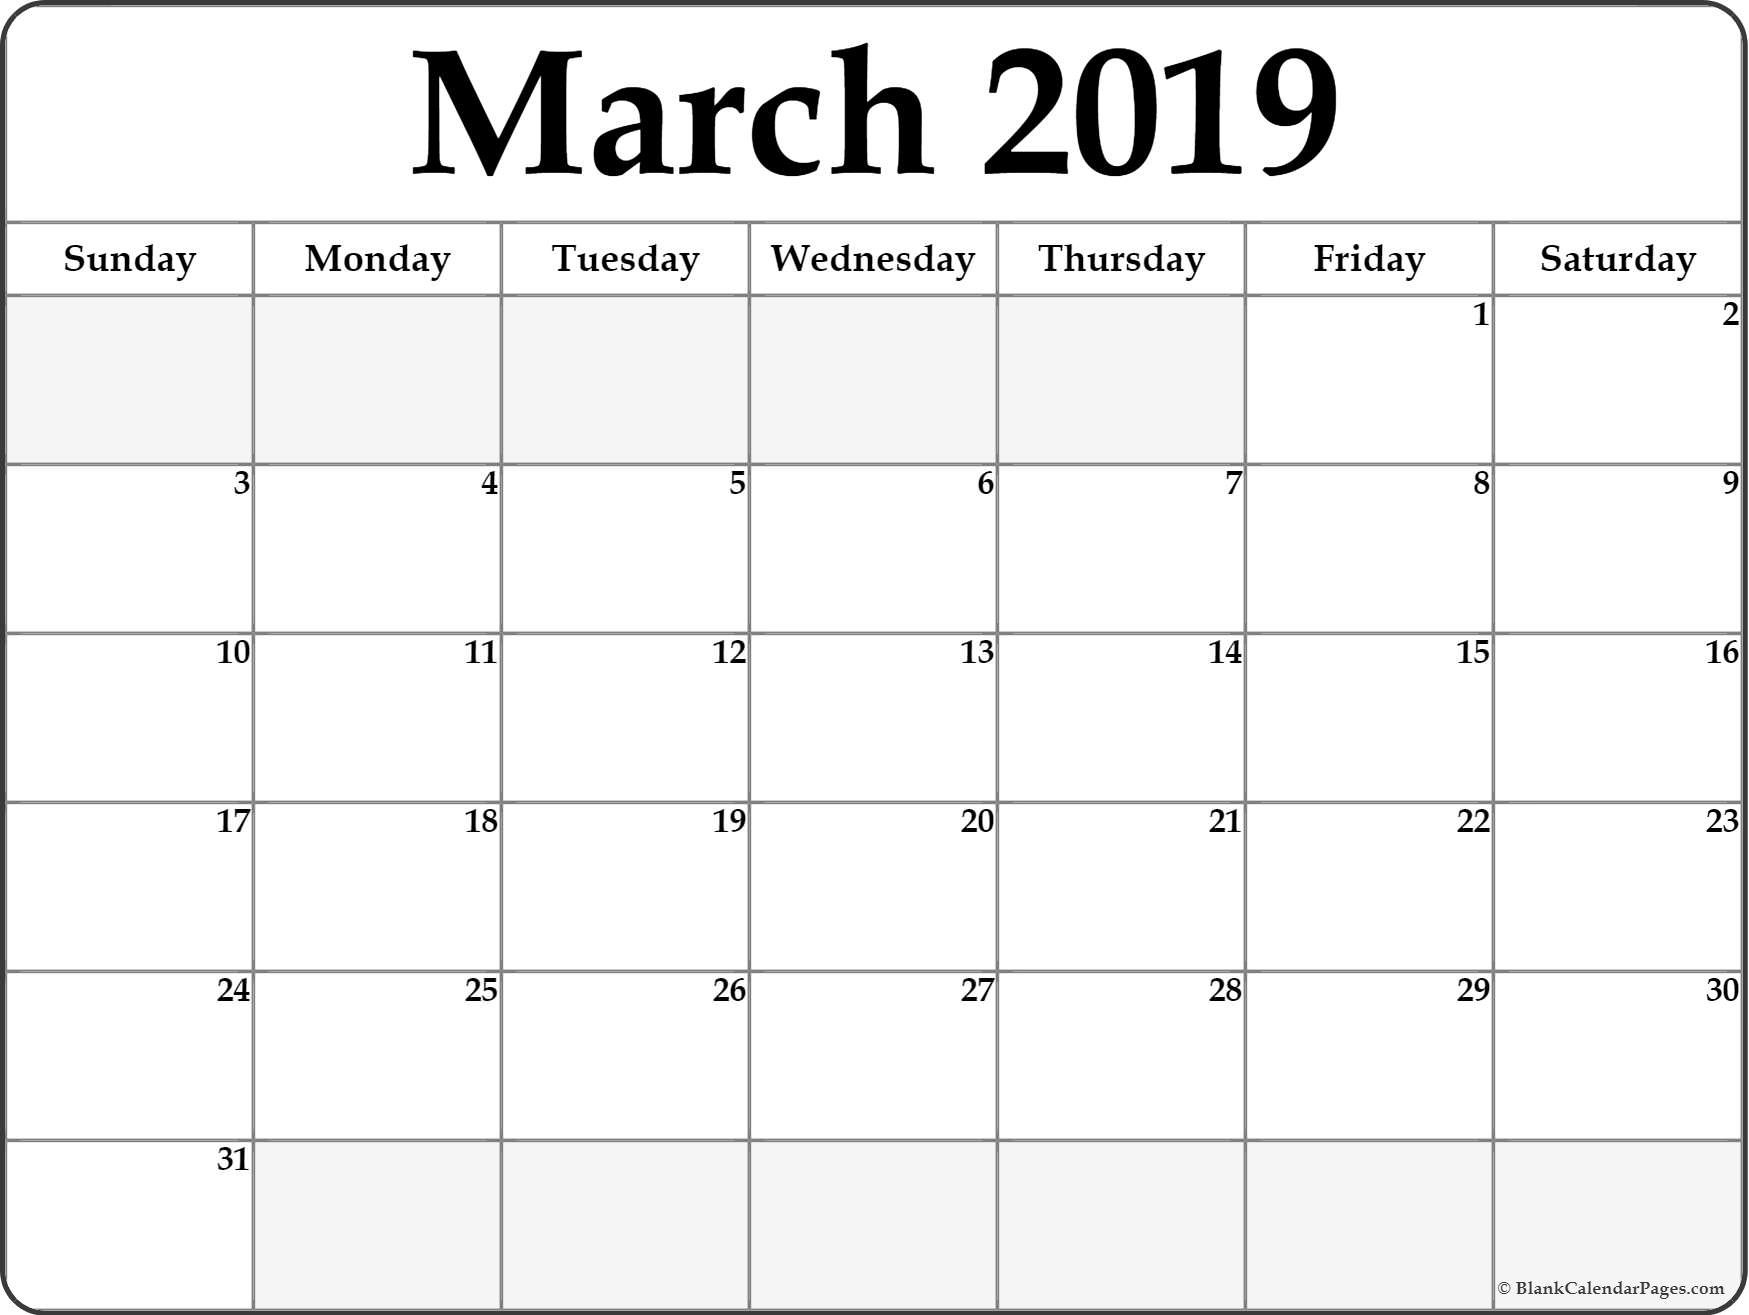 March 2019 Blank Calendar Collection. March 2 2019 Calendar